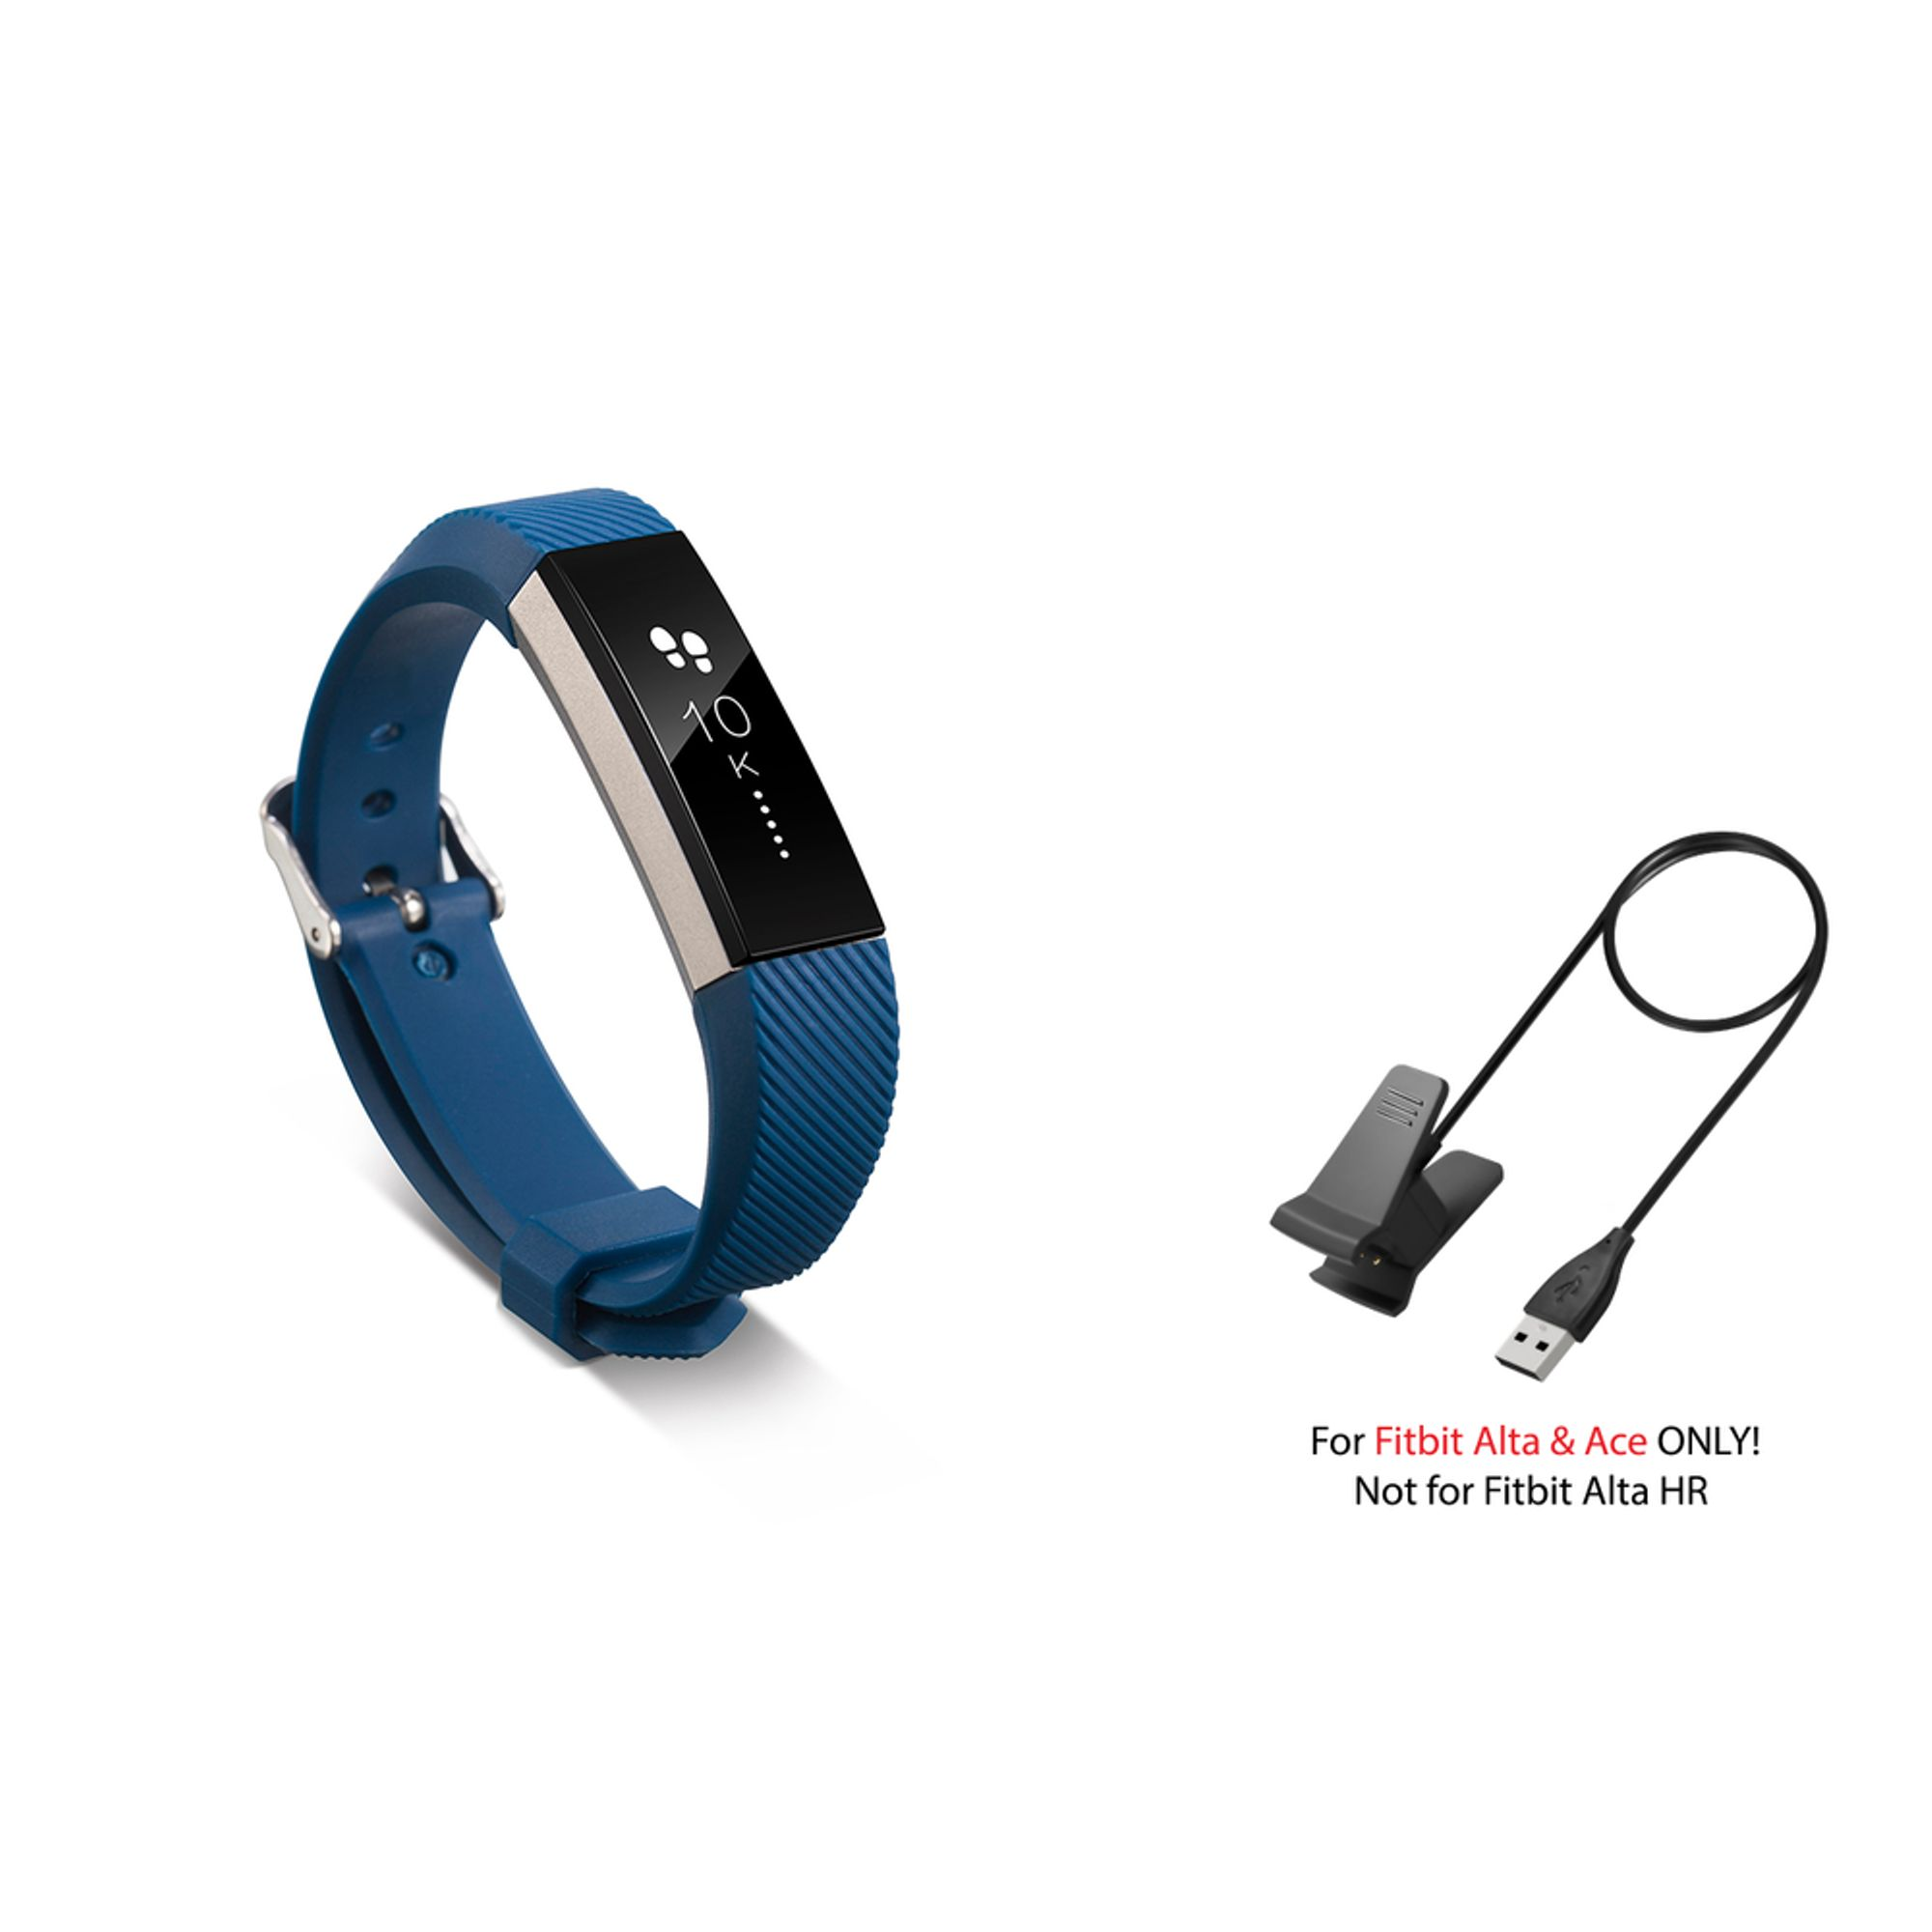 Fitbit Alta / Ace Band by Zodaca Replacement Band Wrist Band and Fitbit Alta / Ace Charger Cable Charging Cord Accessory Bundle for Fitbit Alta / Ace - Dark Blue